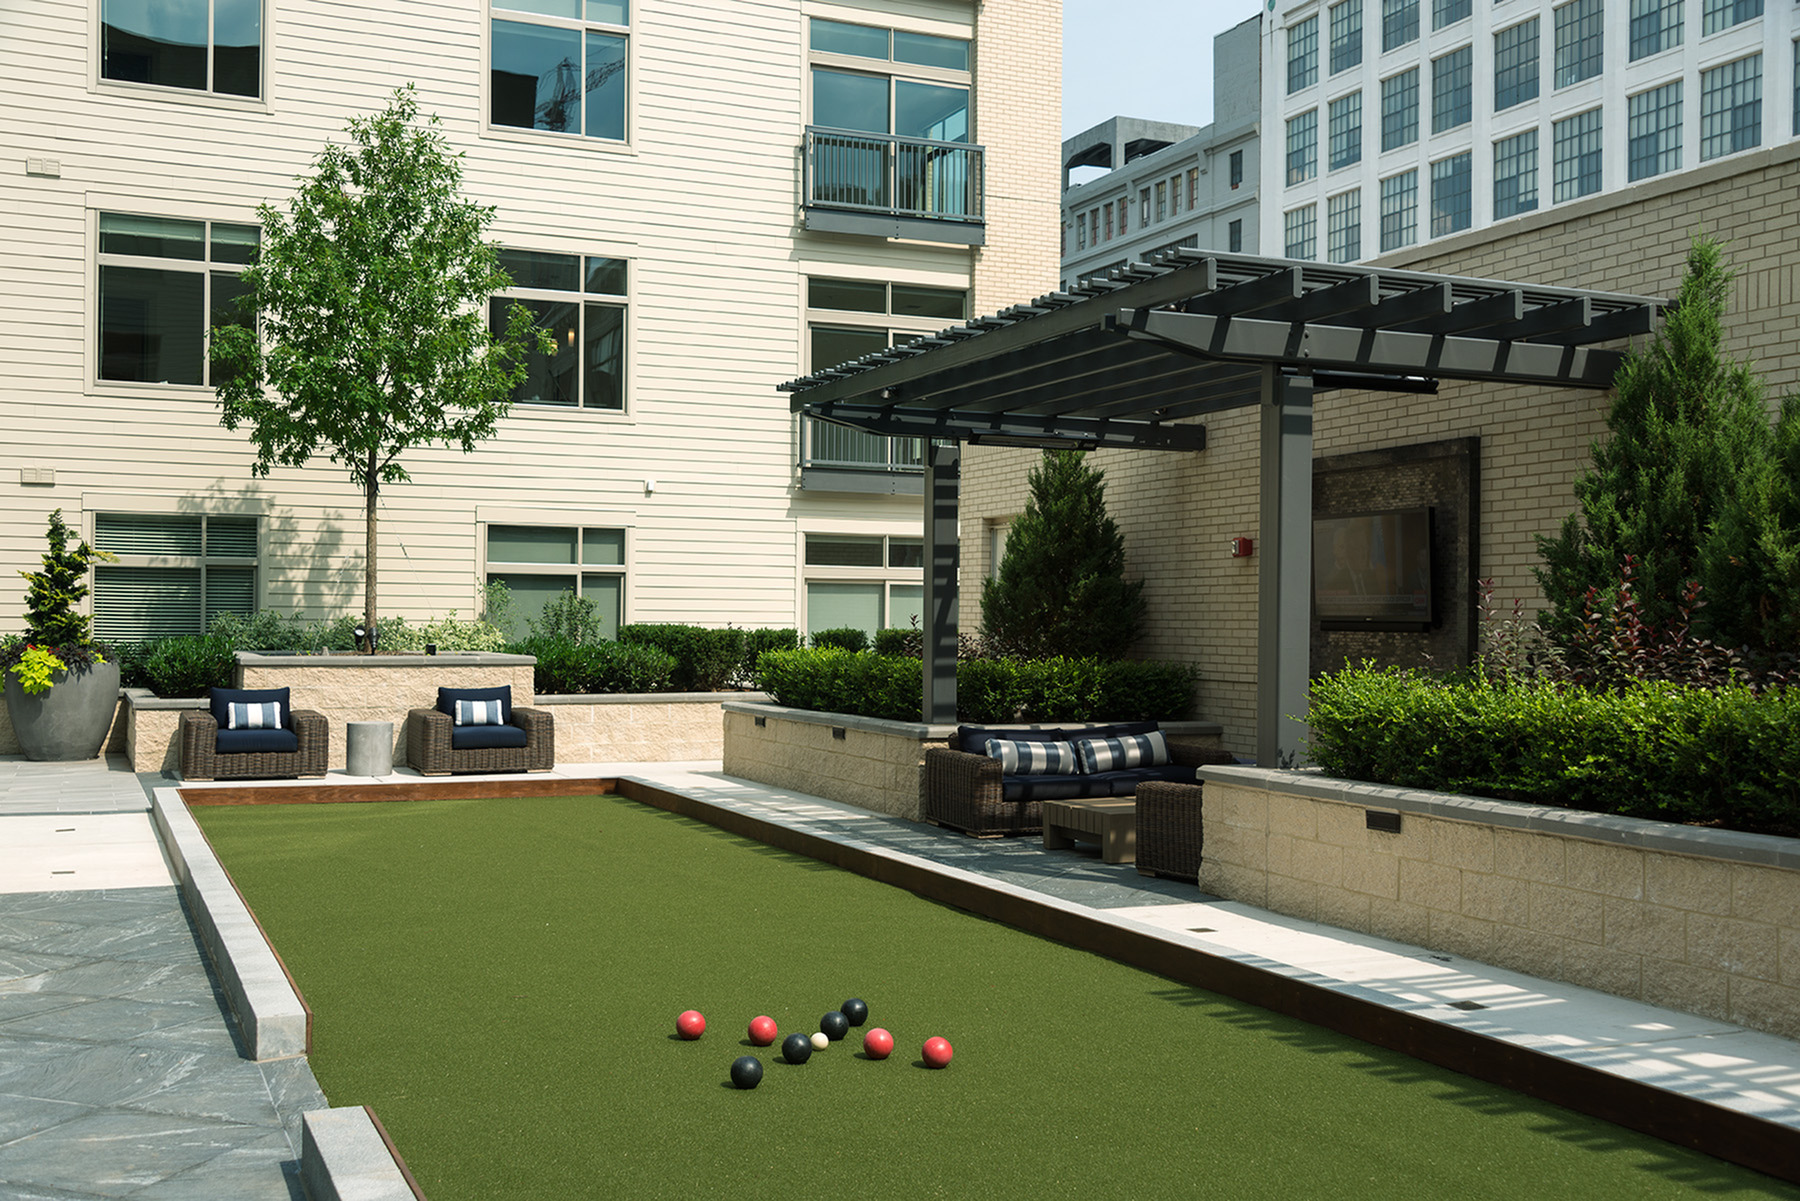 Image of Bocce ball court and outdoor Jenga table for Hanover North Broad